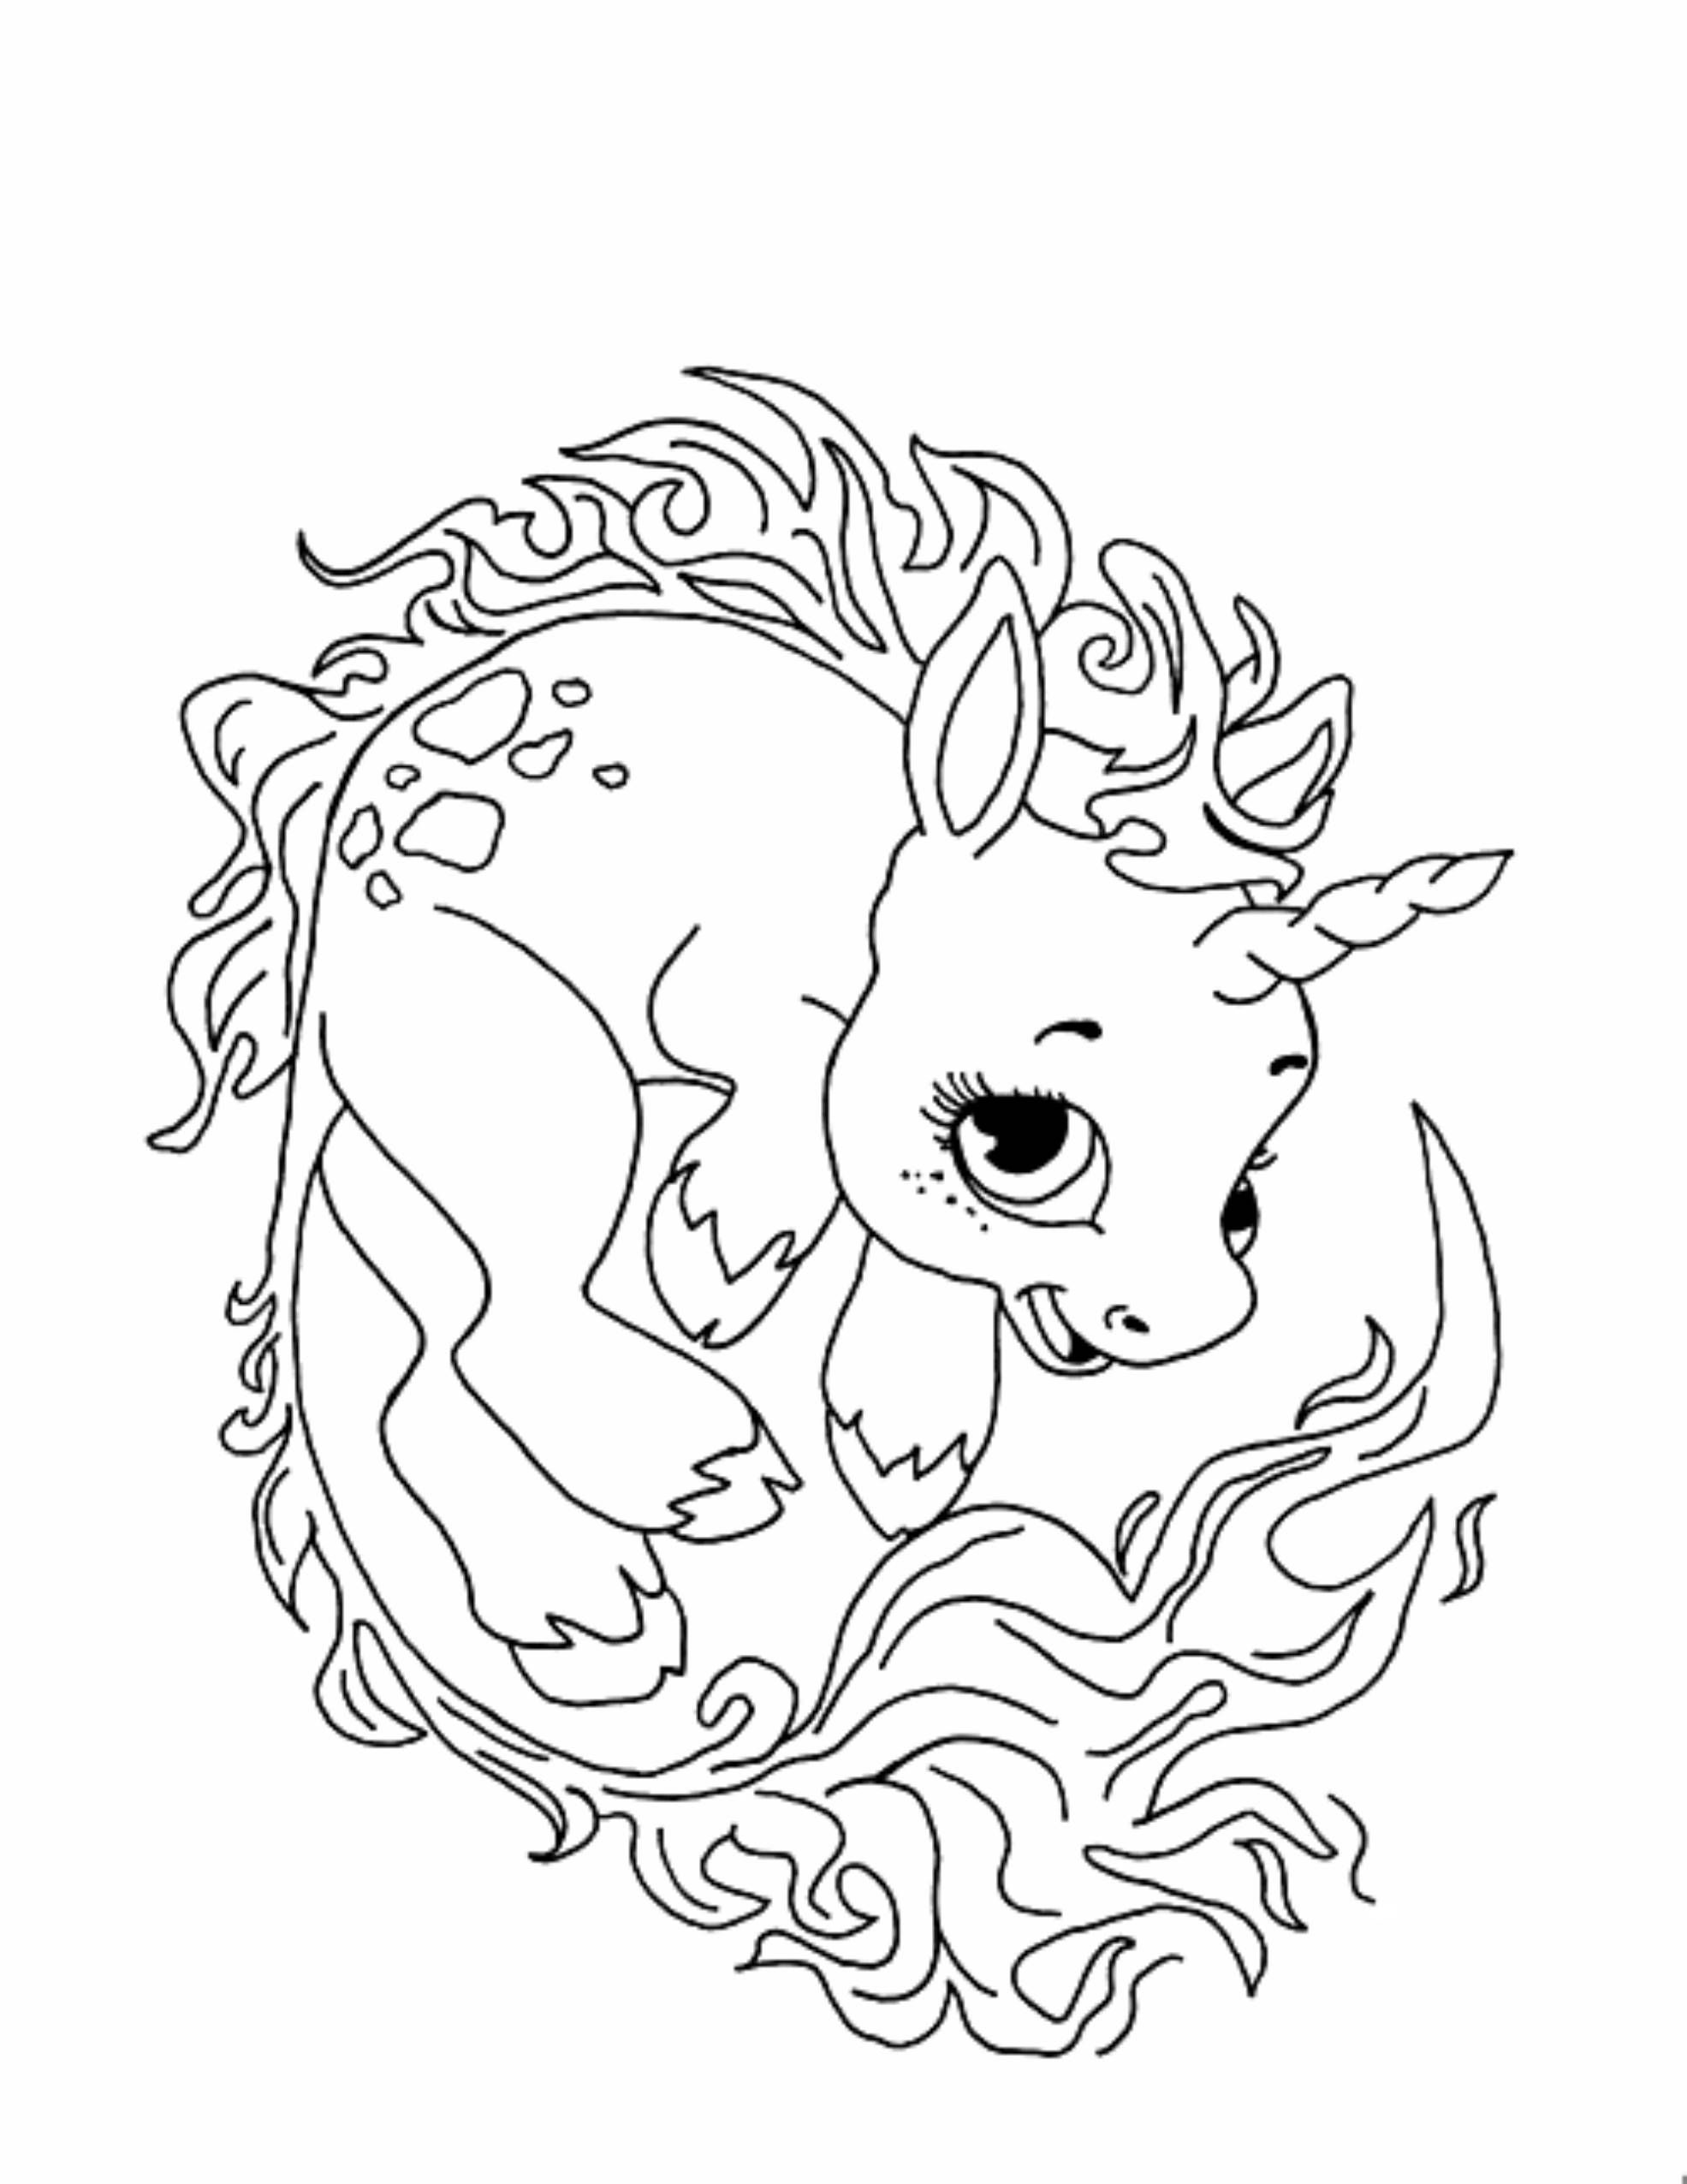 Unicorn Coloring Pages For Adults Printable Kids Colouring